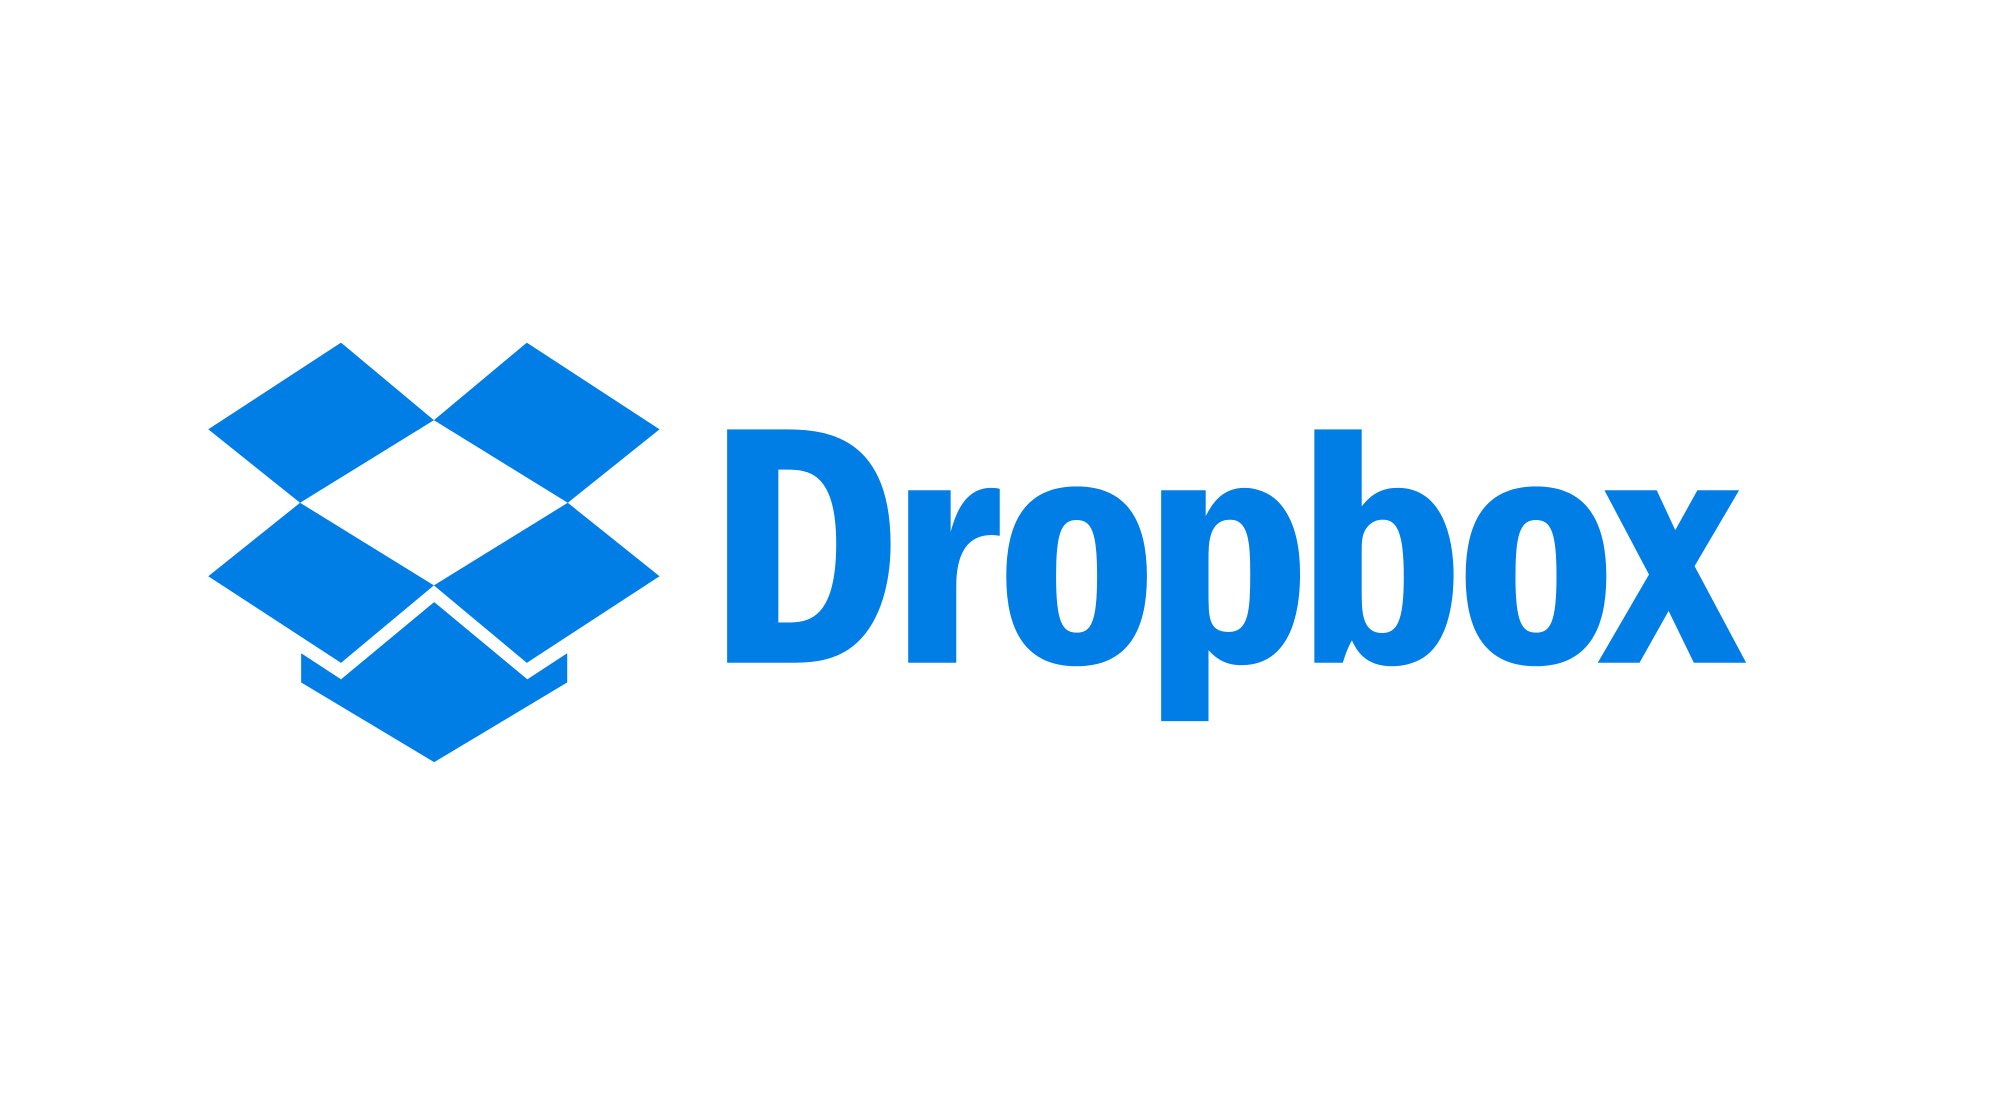 The new Dropbox Application is now available at the Microsoft Store